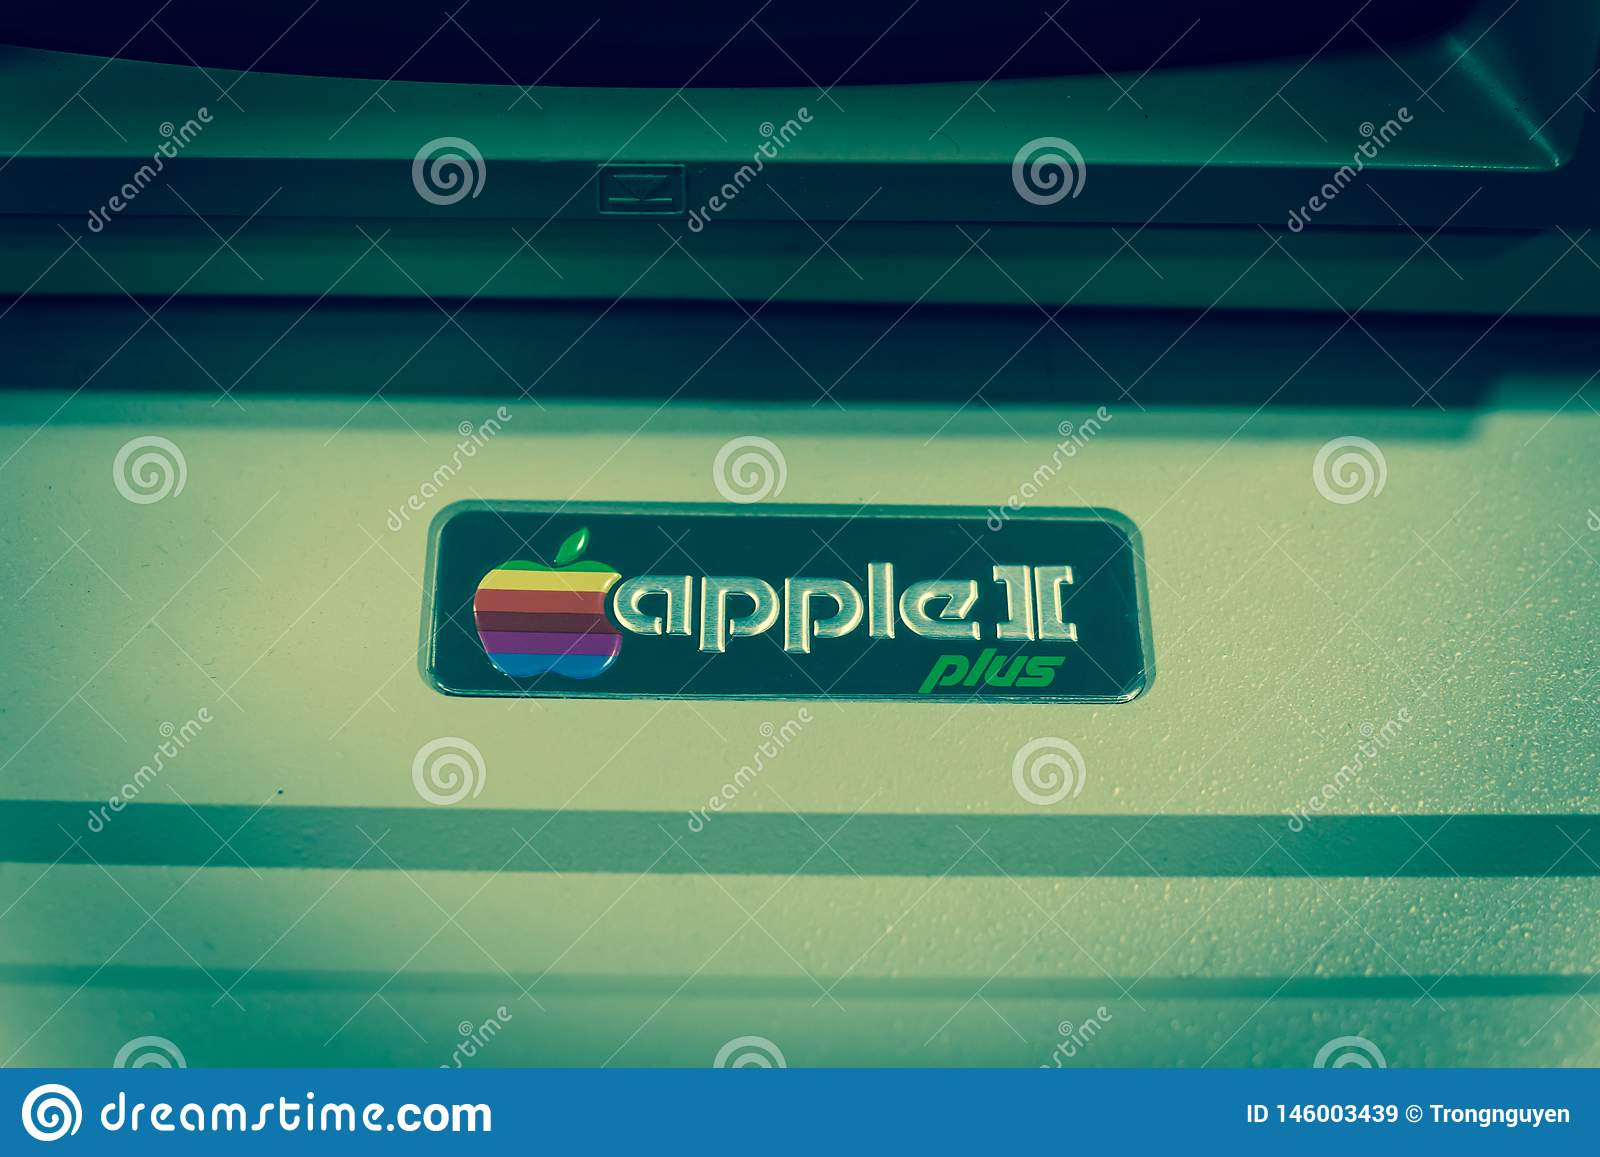 Filtered image close-up logo of old Apple II computer